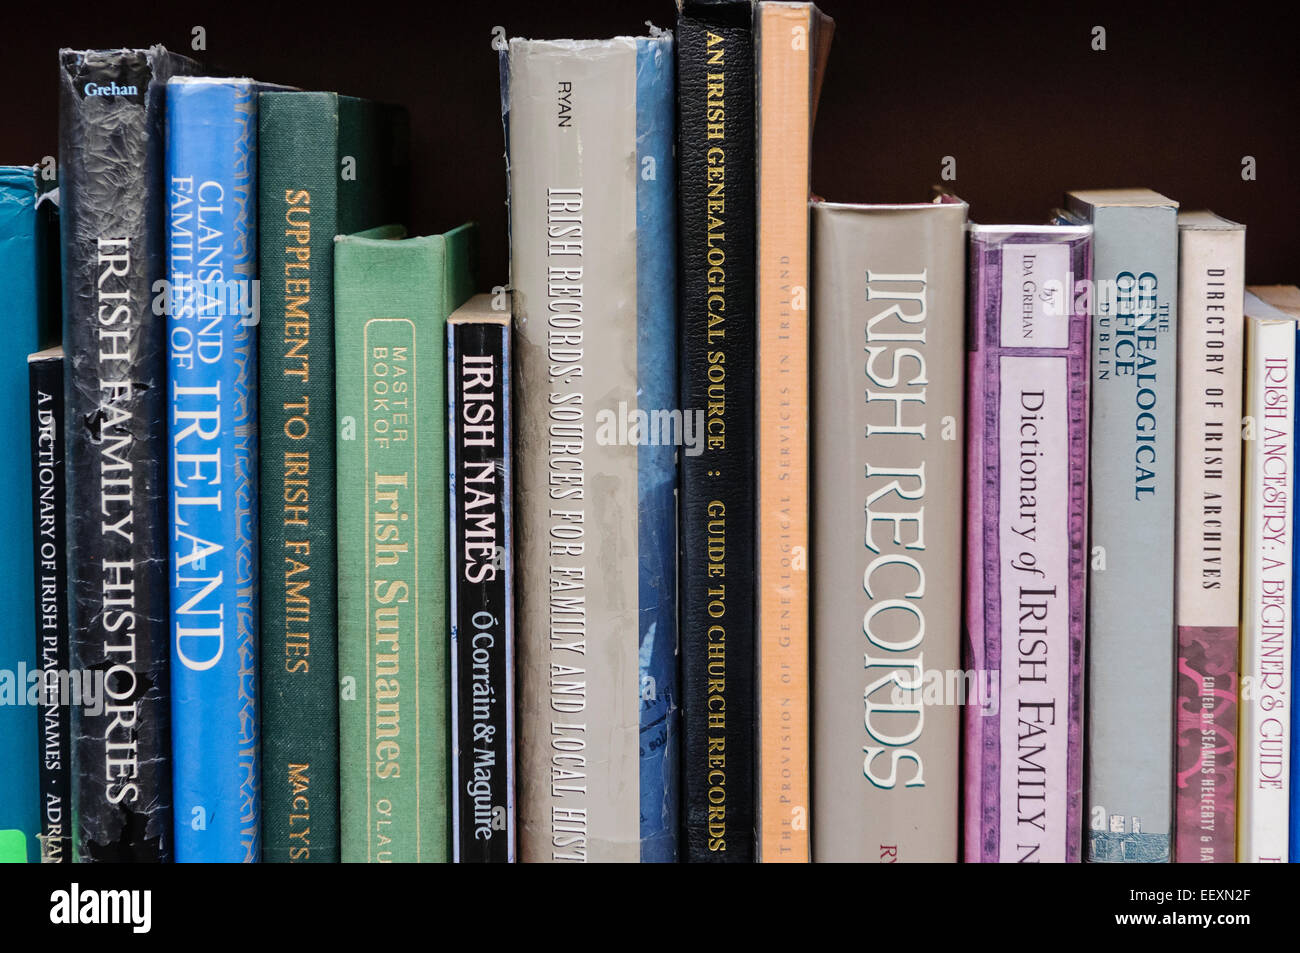 Books on Irish family history and genealogy research in a Belfast library - Stock Image